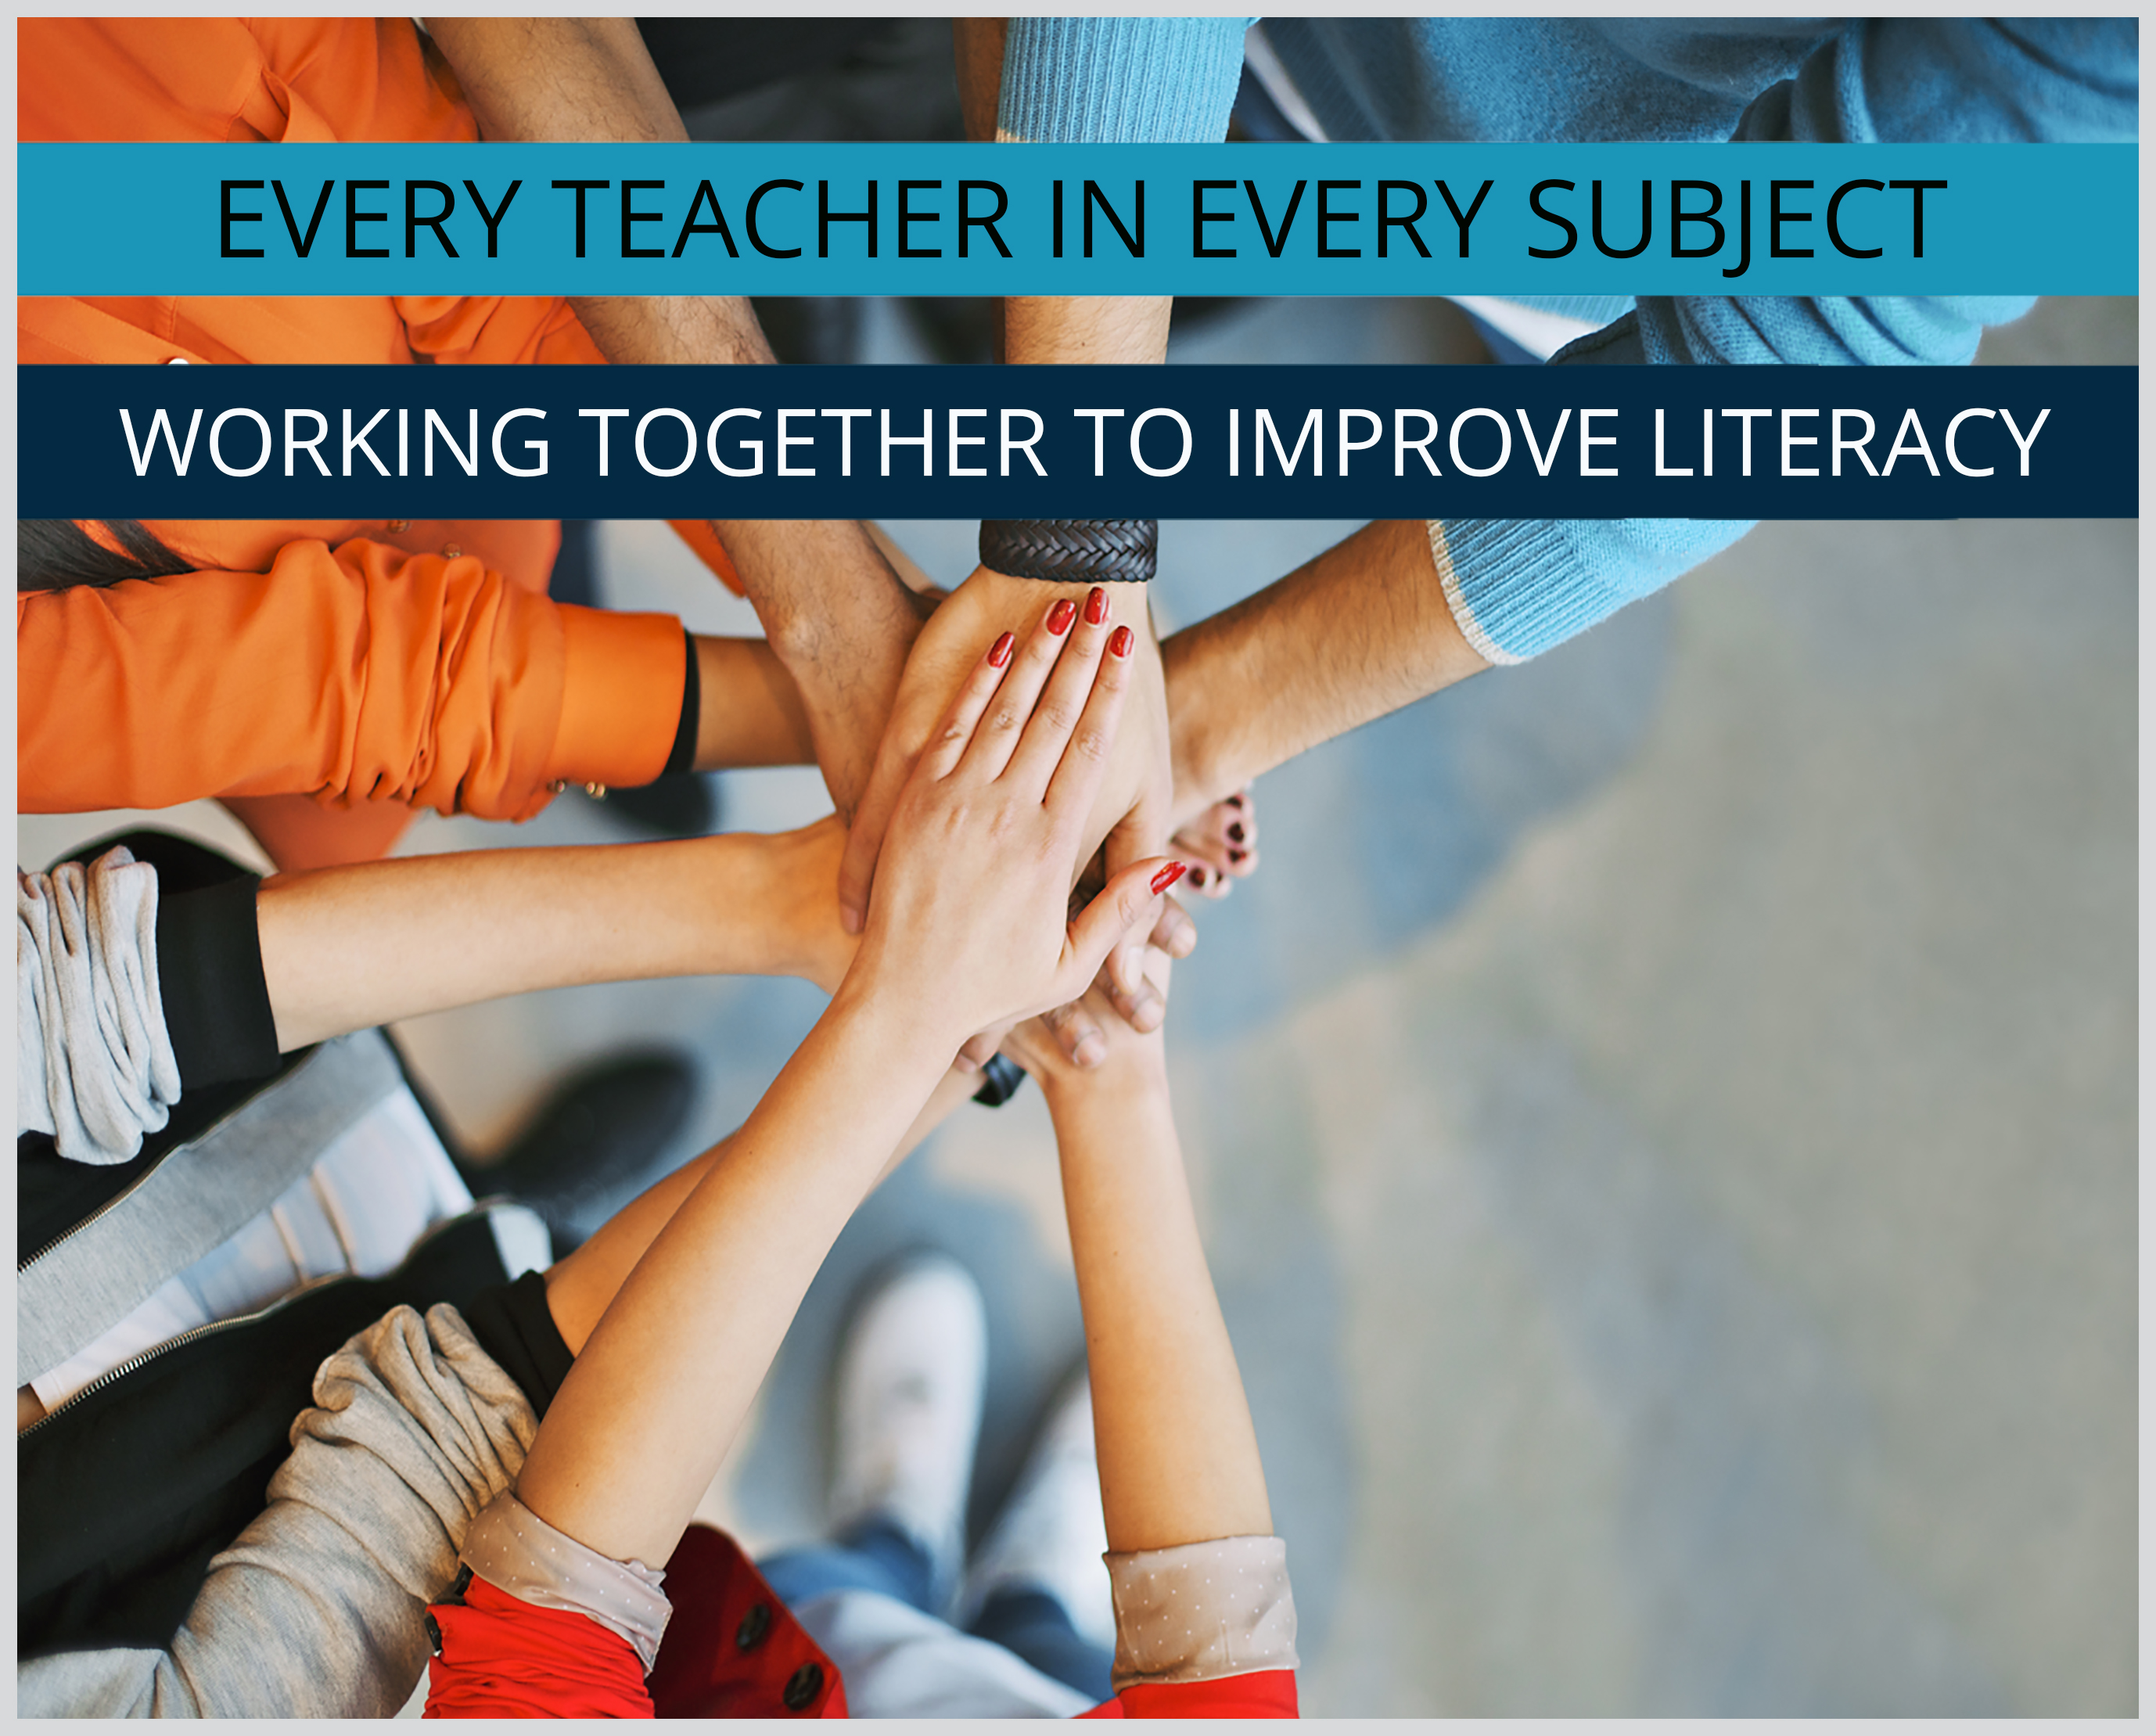 WORKING TOGETHER TO IMPROVE LITERACY